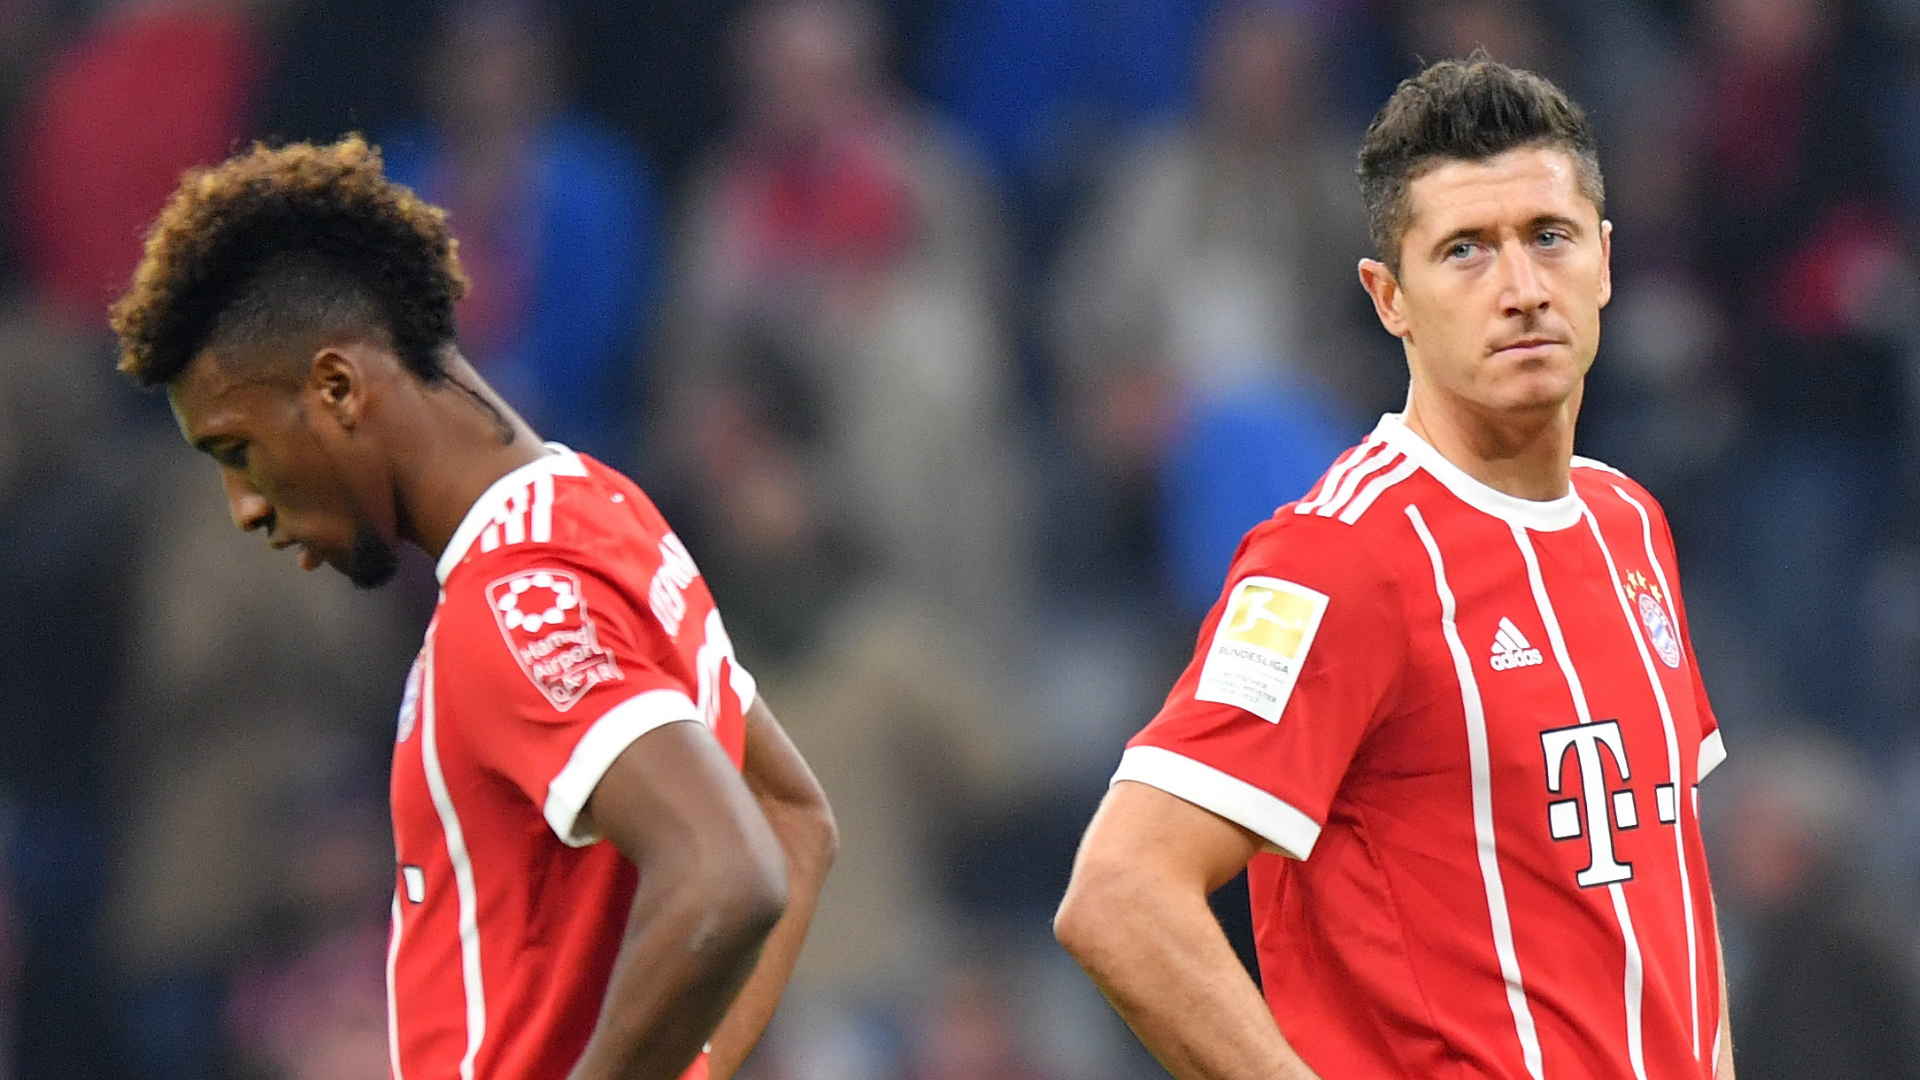 Robert Lewandowski & Kingsley Coman reportedly had a fist fight during Bayern training